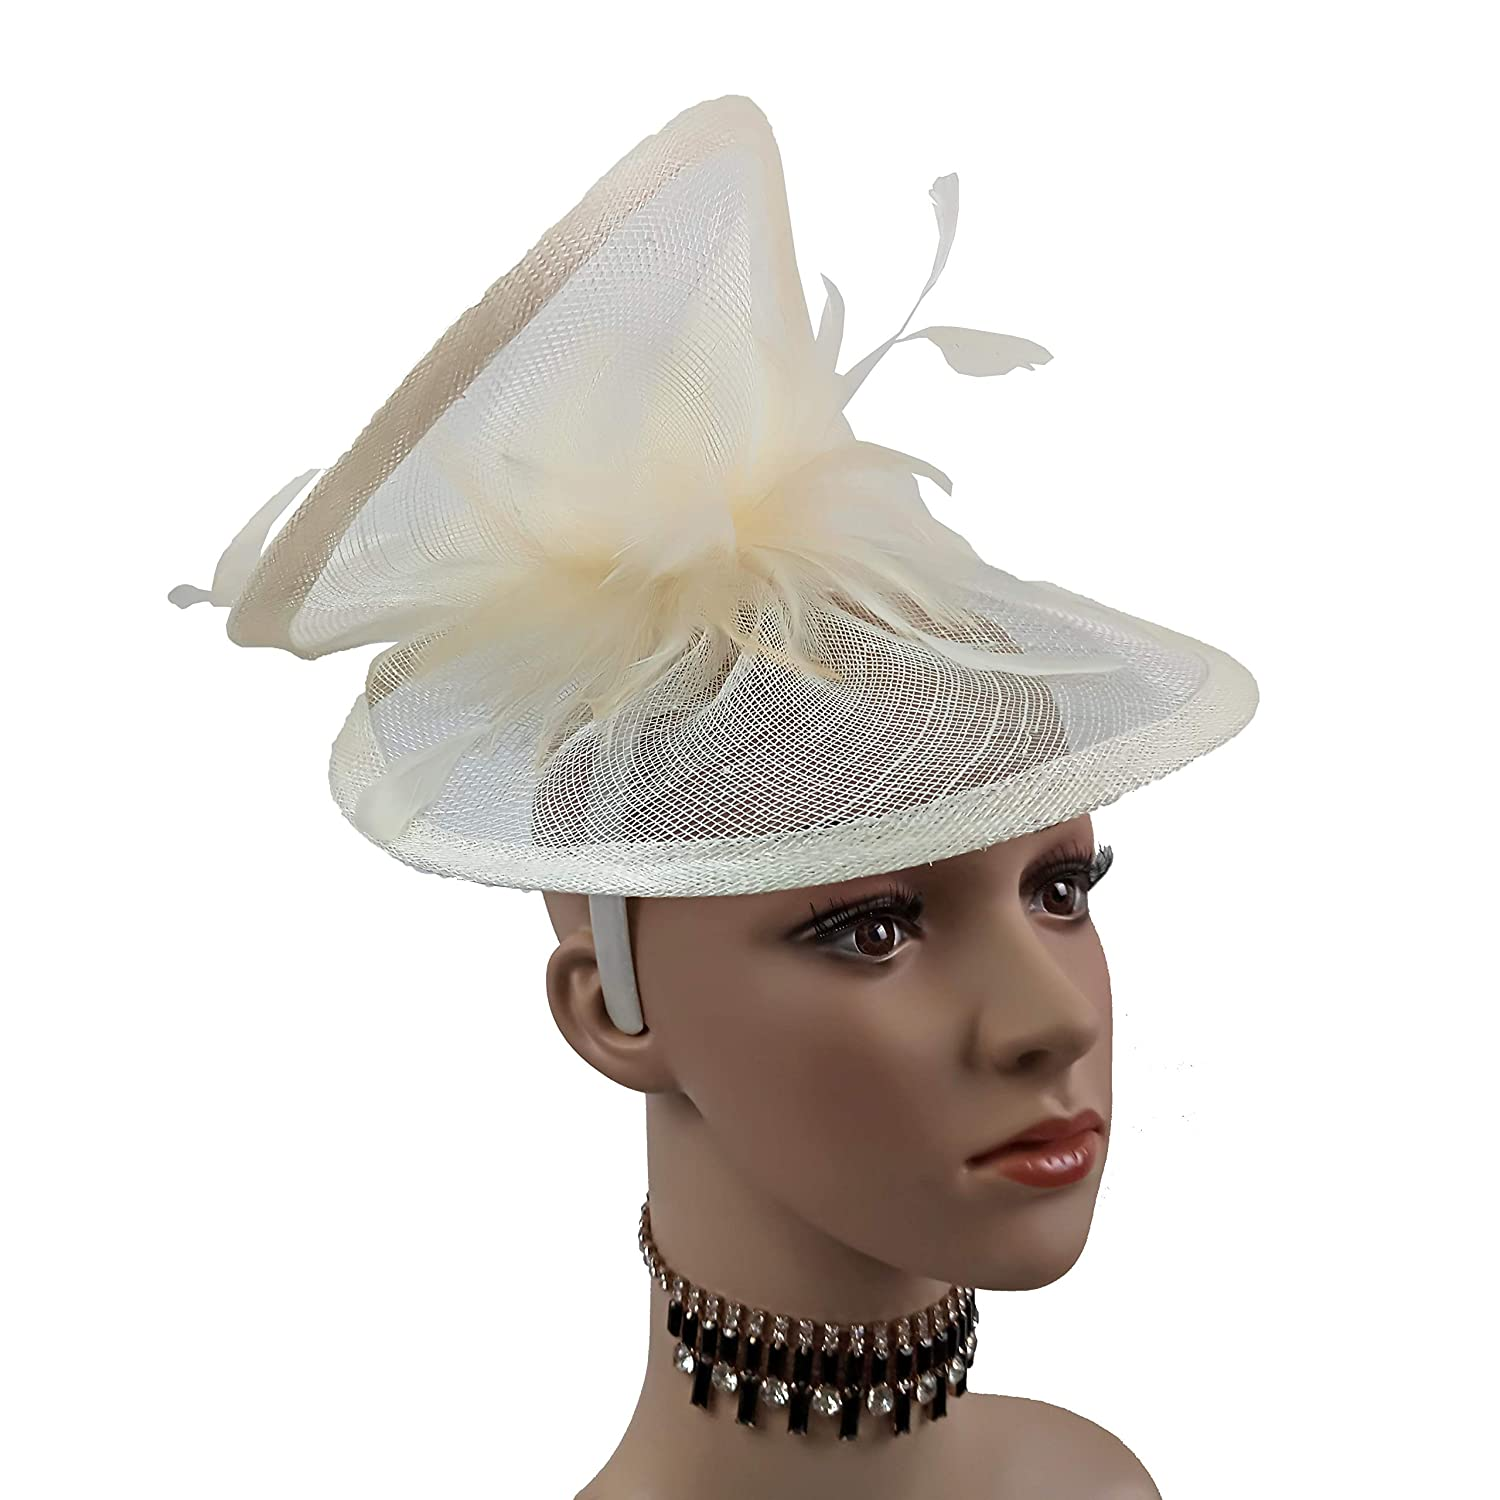 24df403c591d2 ABPF Sinamay Heart Fascinator Headband Hats Floppy Feather Wedding Derby  Racing Fascinator Hat at Amazon Women s Clothing store